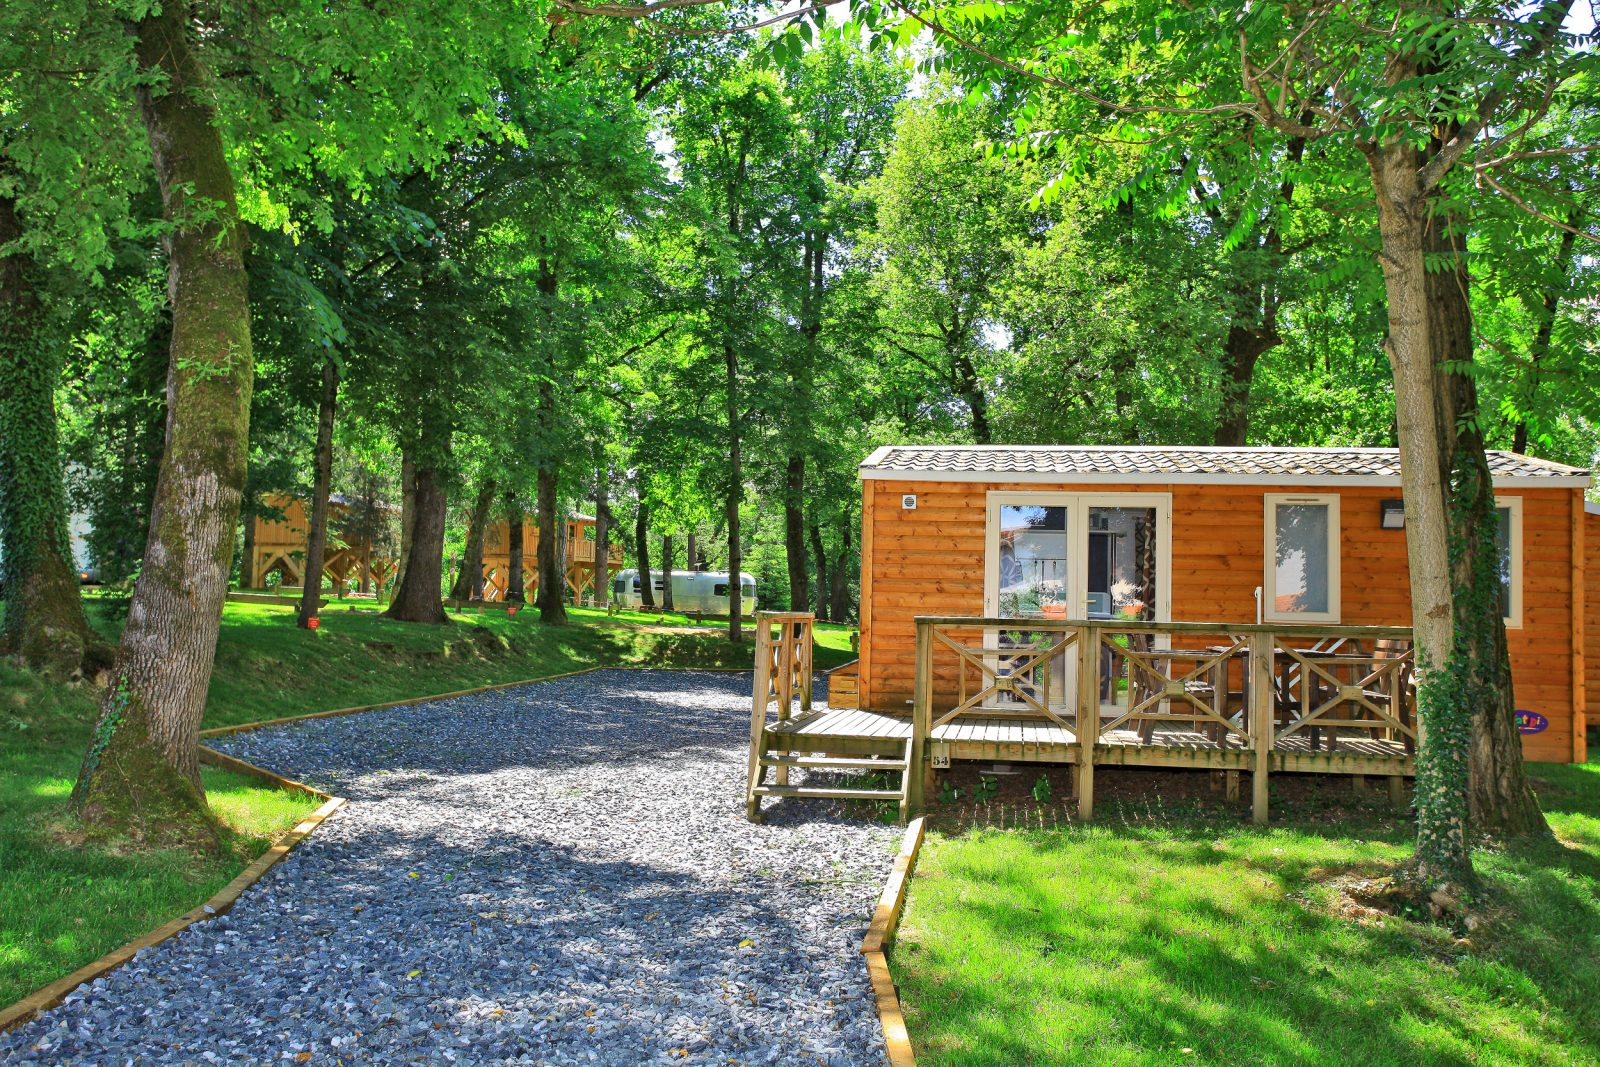 Albirondack Camping Tarn Mobile home Zion